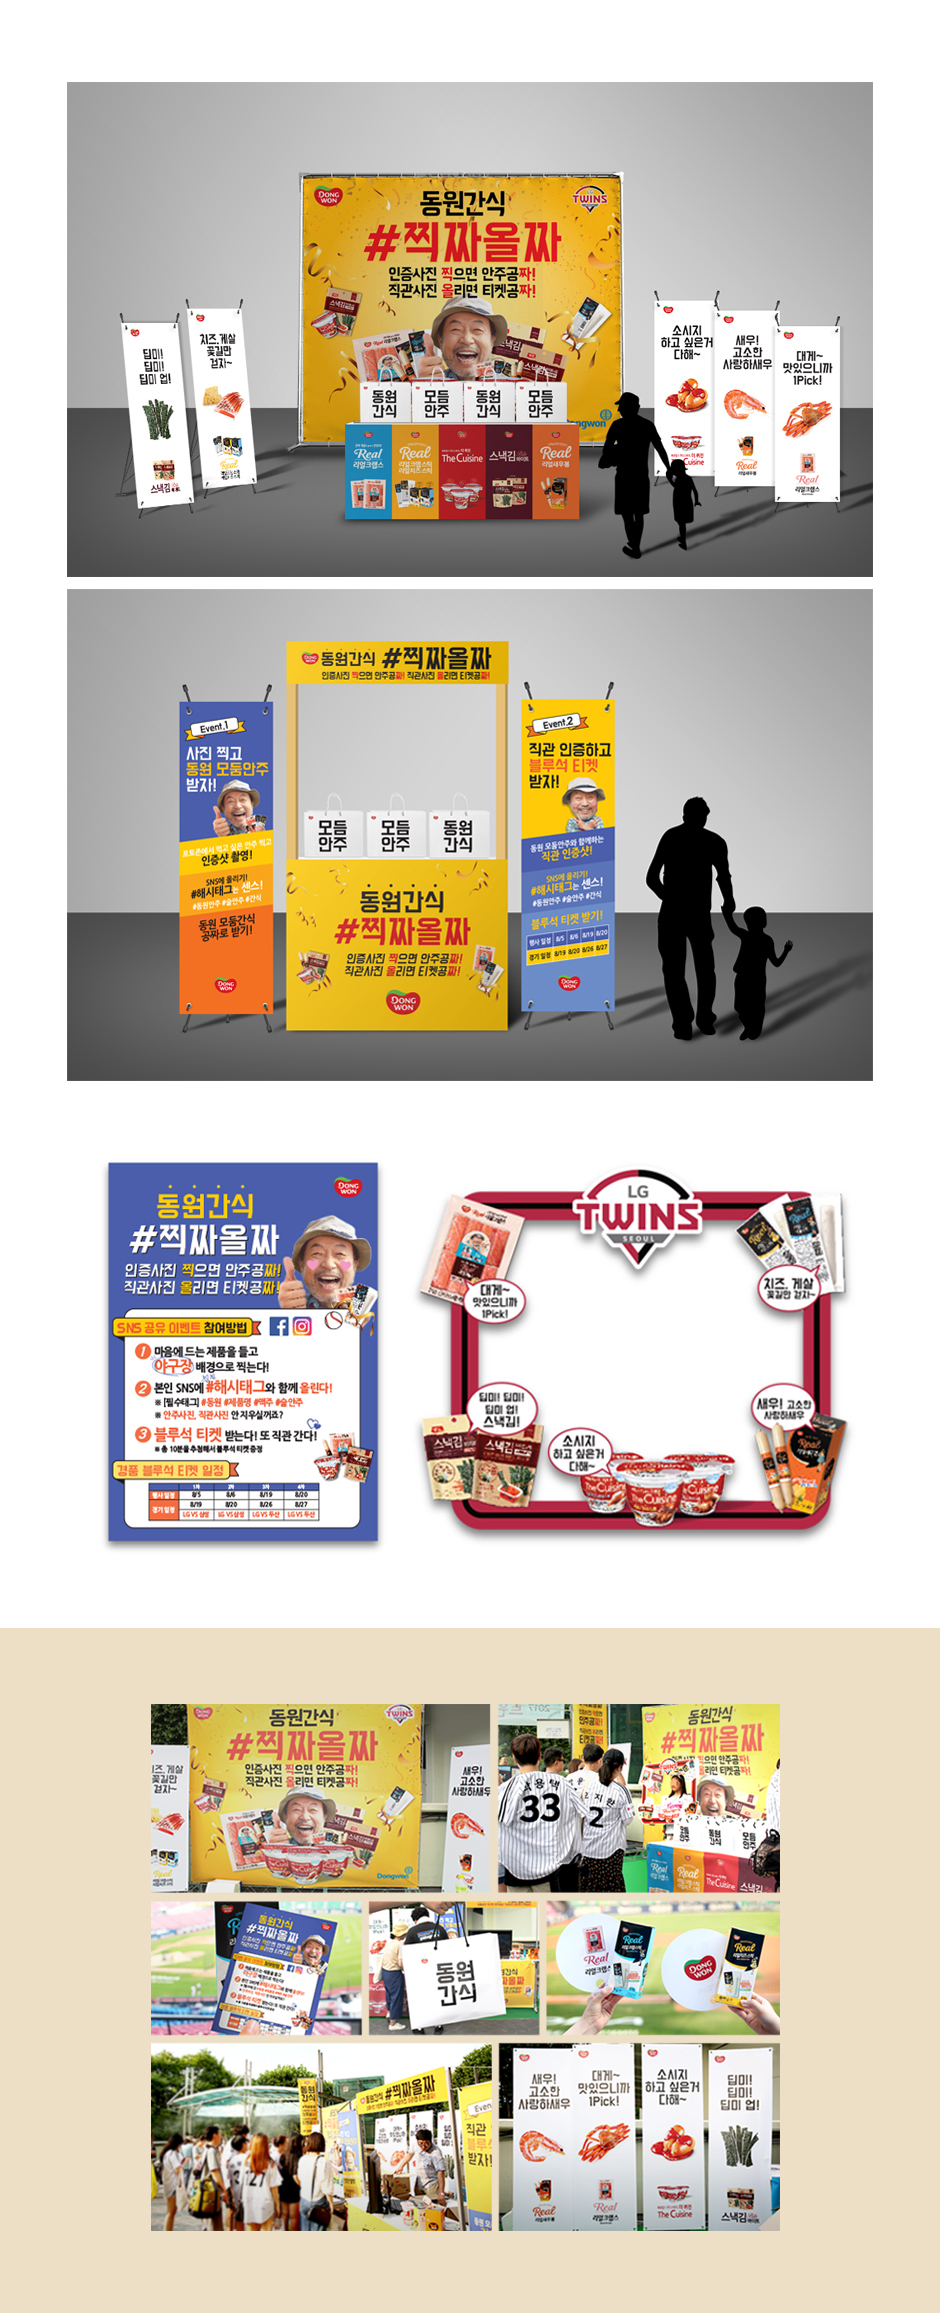 Dongwon FnB Snack series baseball promotion 2017